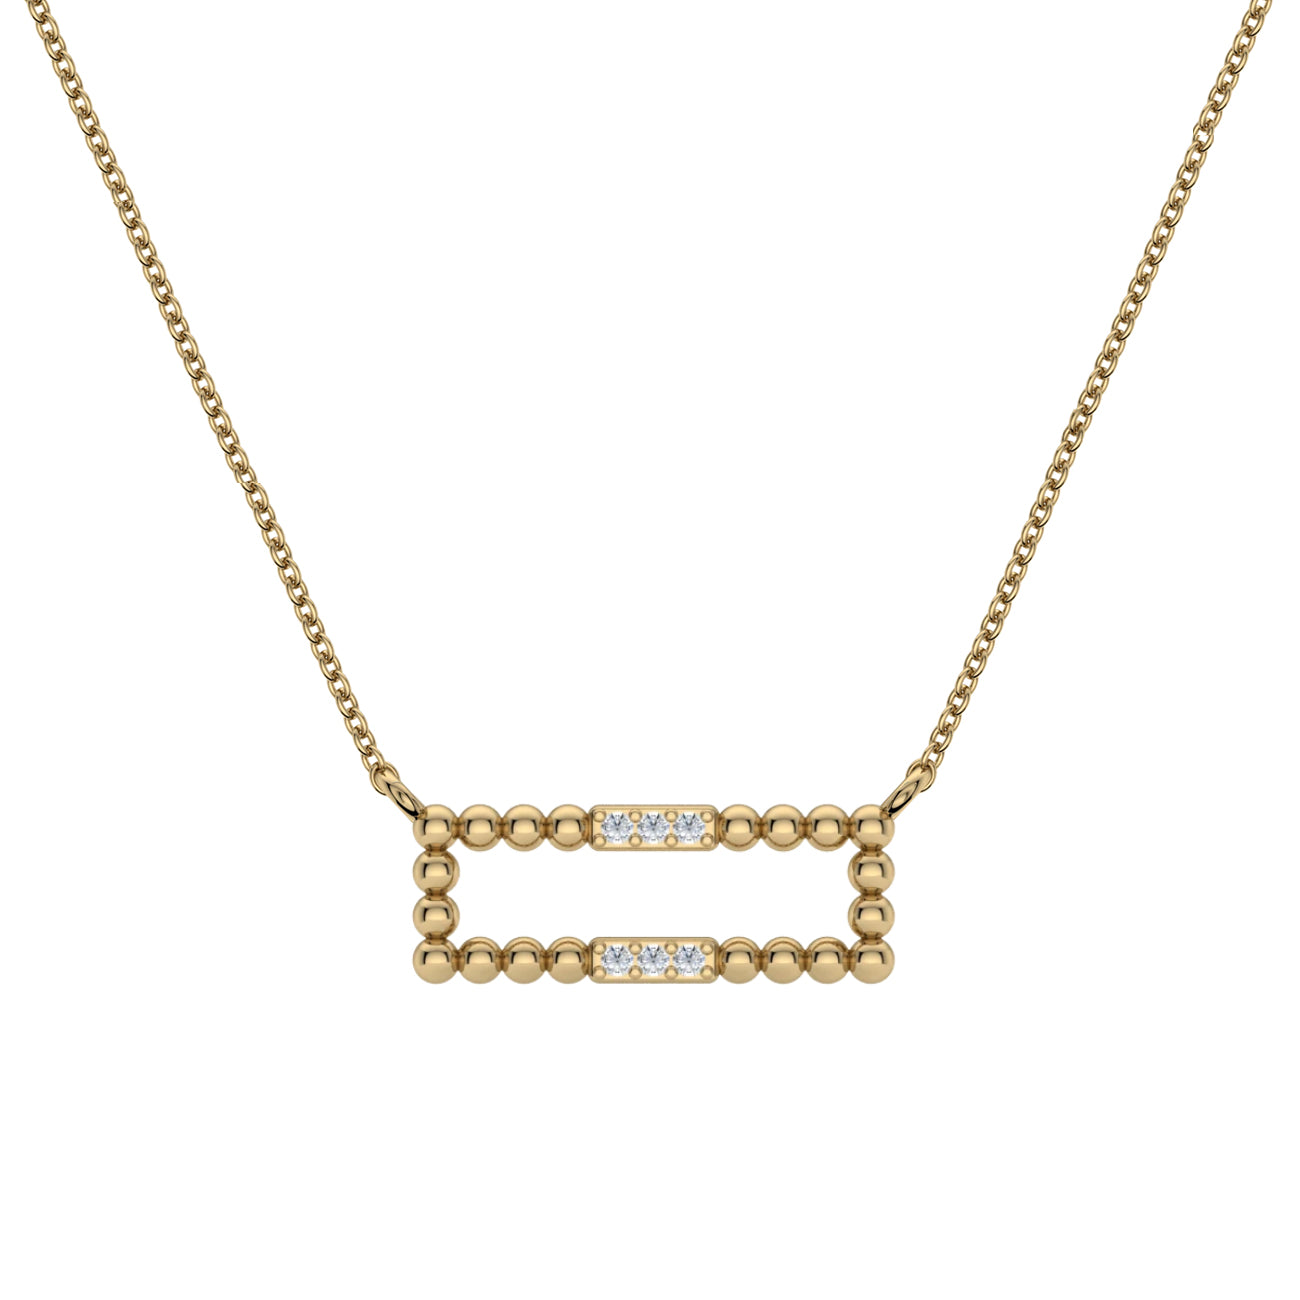 Diamond and Bead Bar Necklace, 14K Yellow Gold